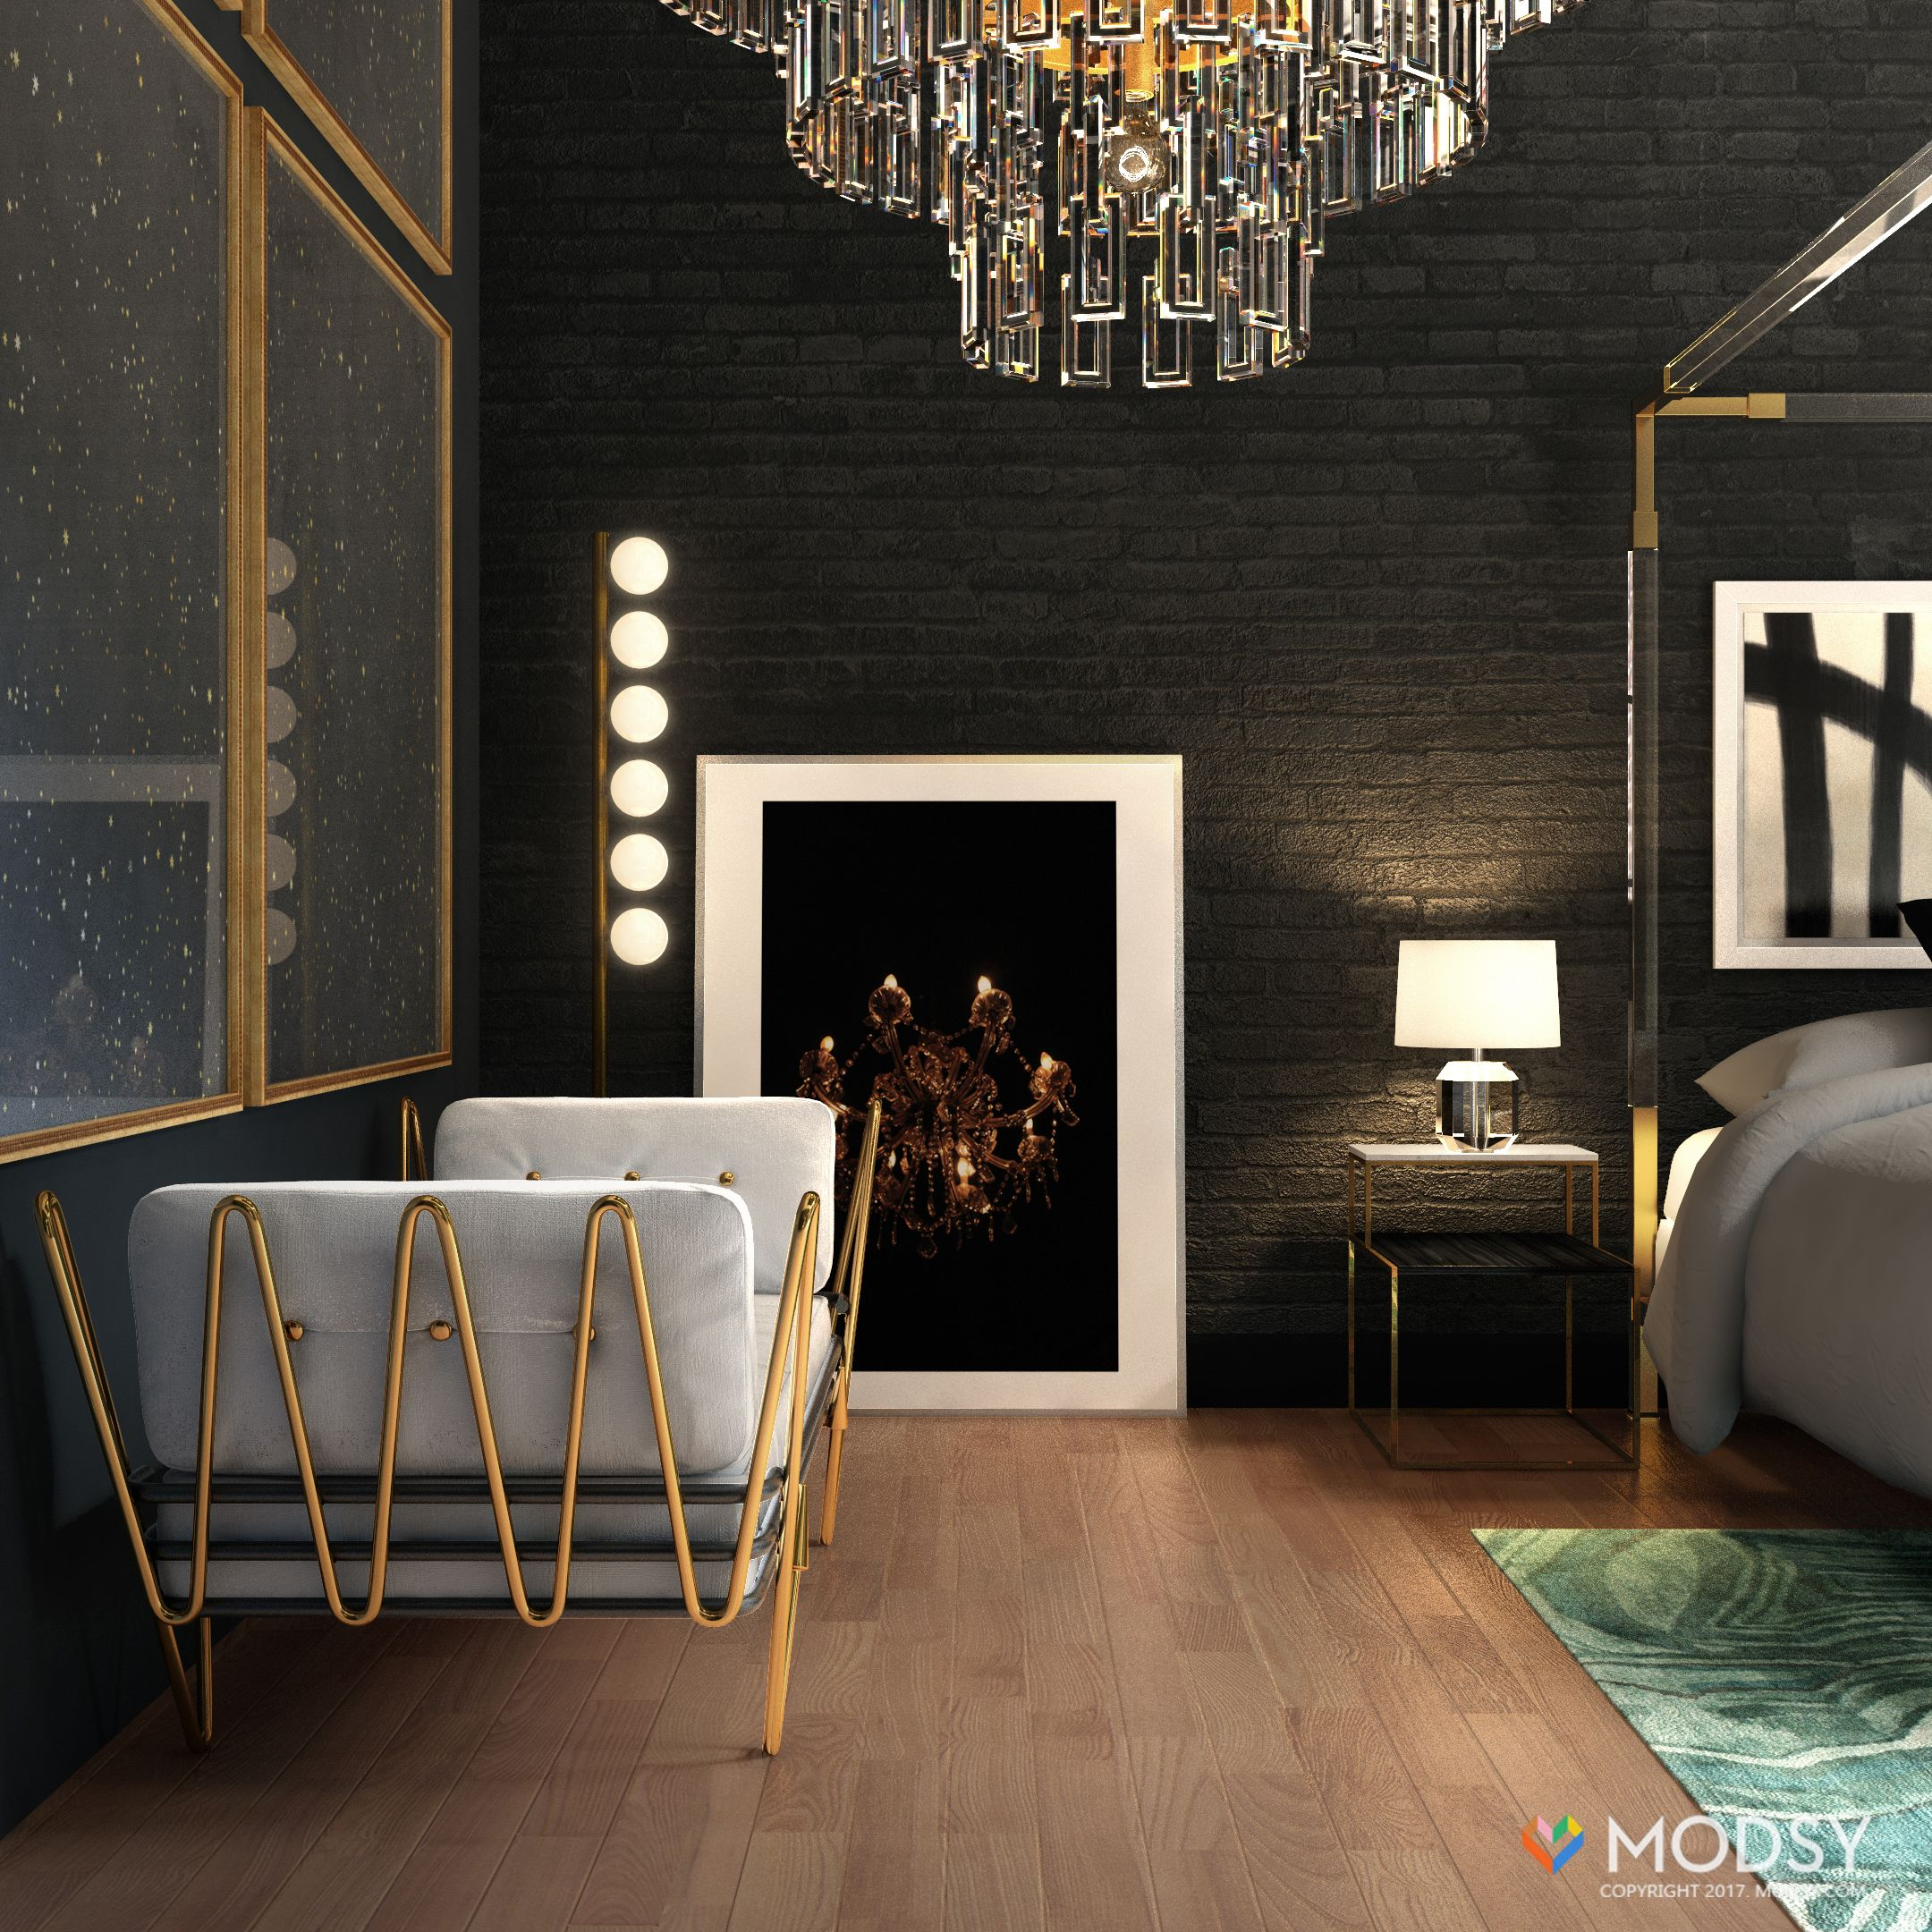 Hollywood Glam Bedroom With An Industrial Twist With Images